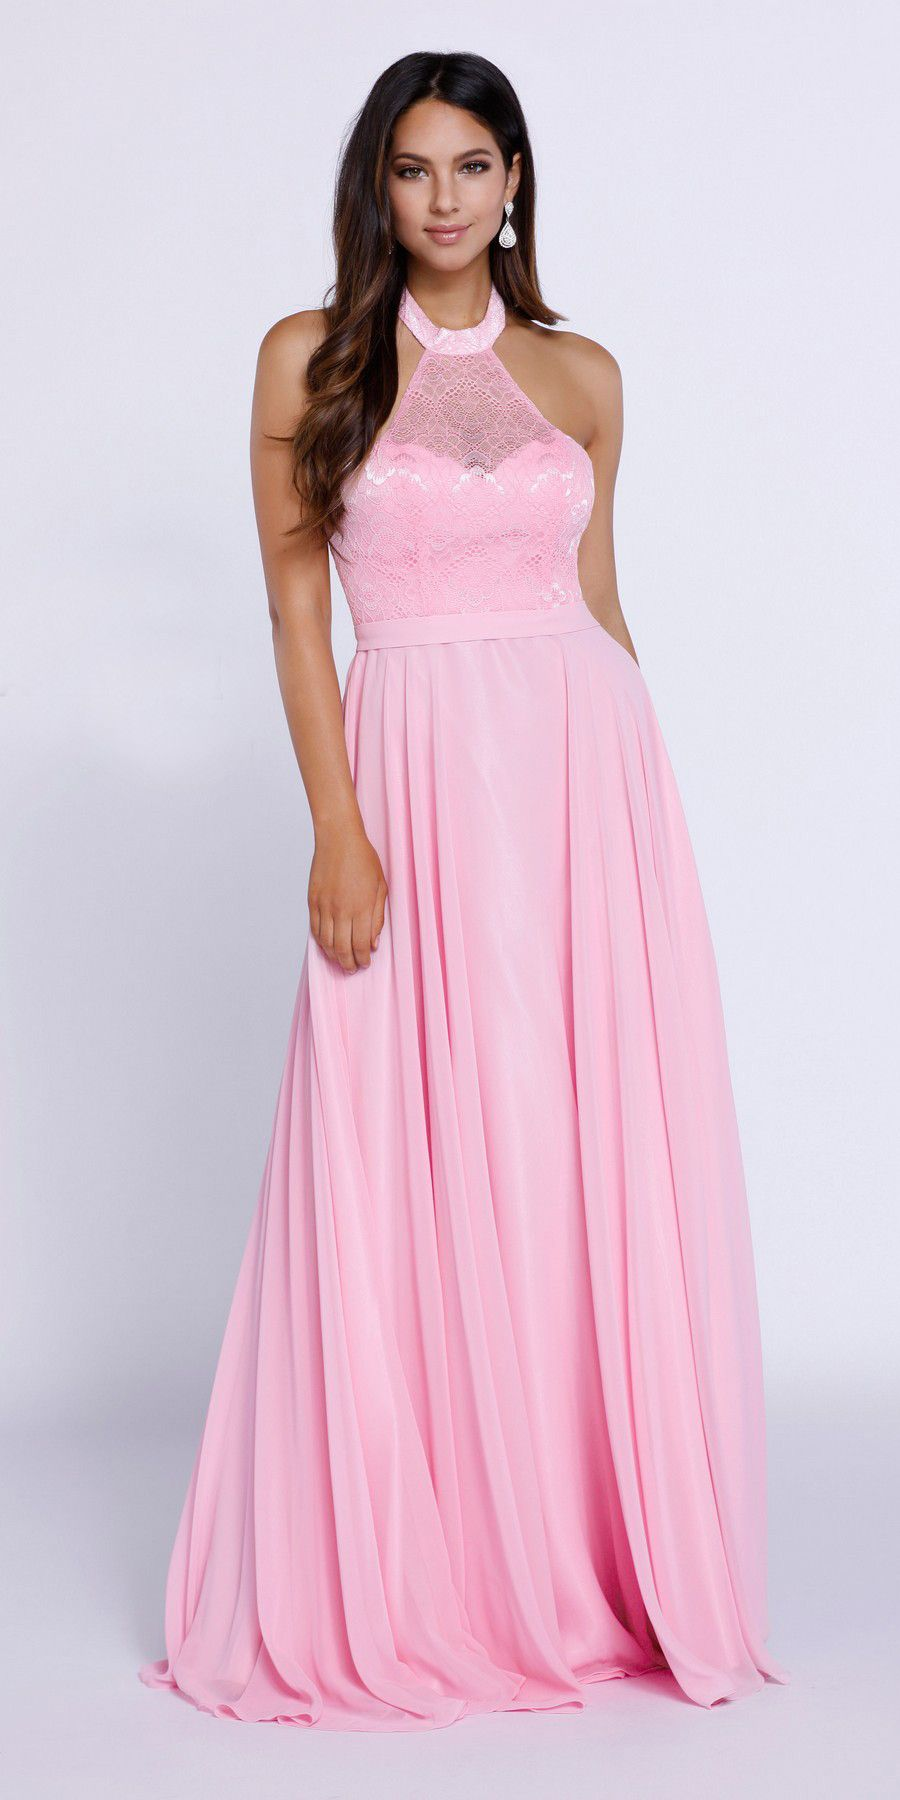 Baby Pink High Neck Halter Top Prom Dress Chiffon Illusion Neck ...